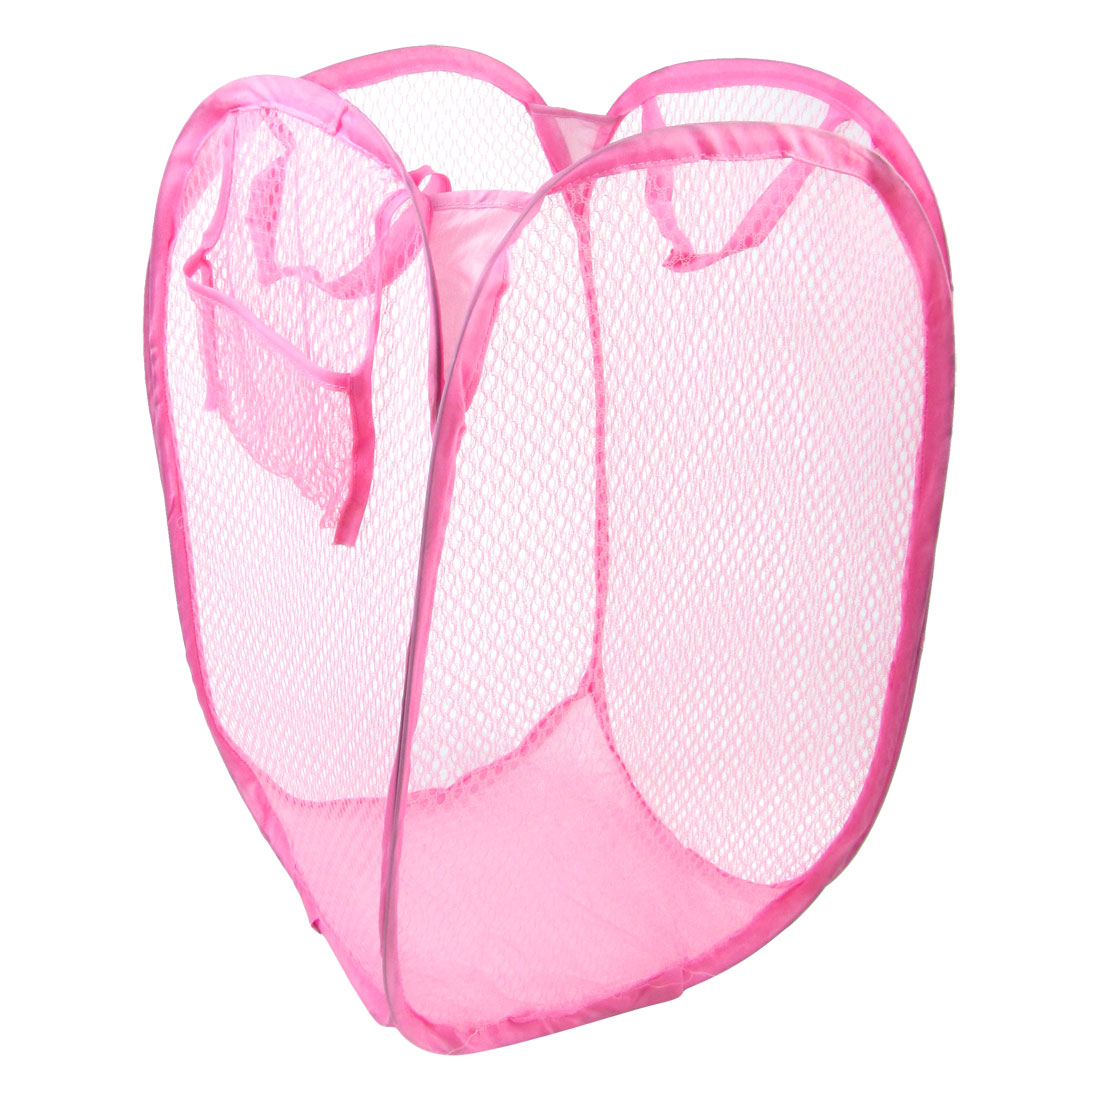 Washroom Nylon Pop up Clothes Bag Folding Mesh Storage Laundry Basket Pink